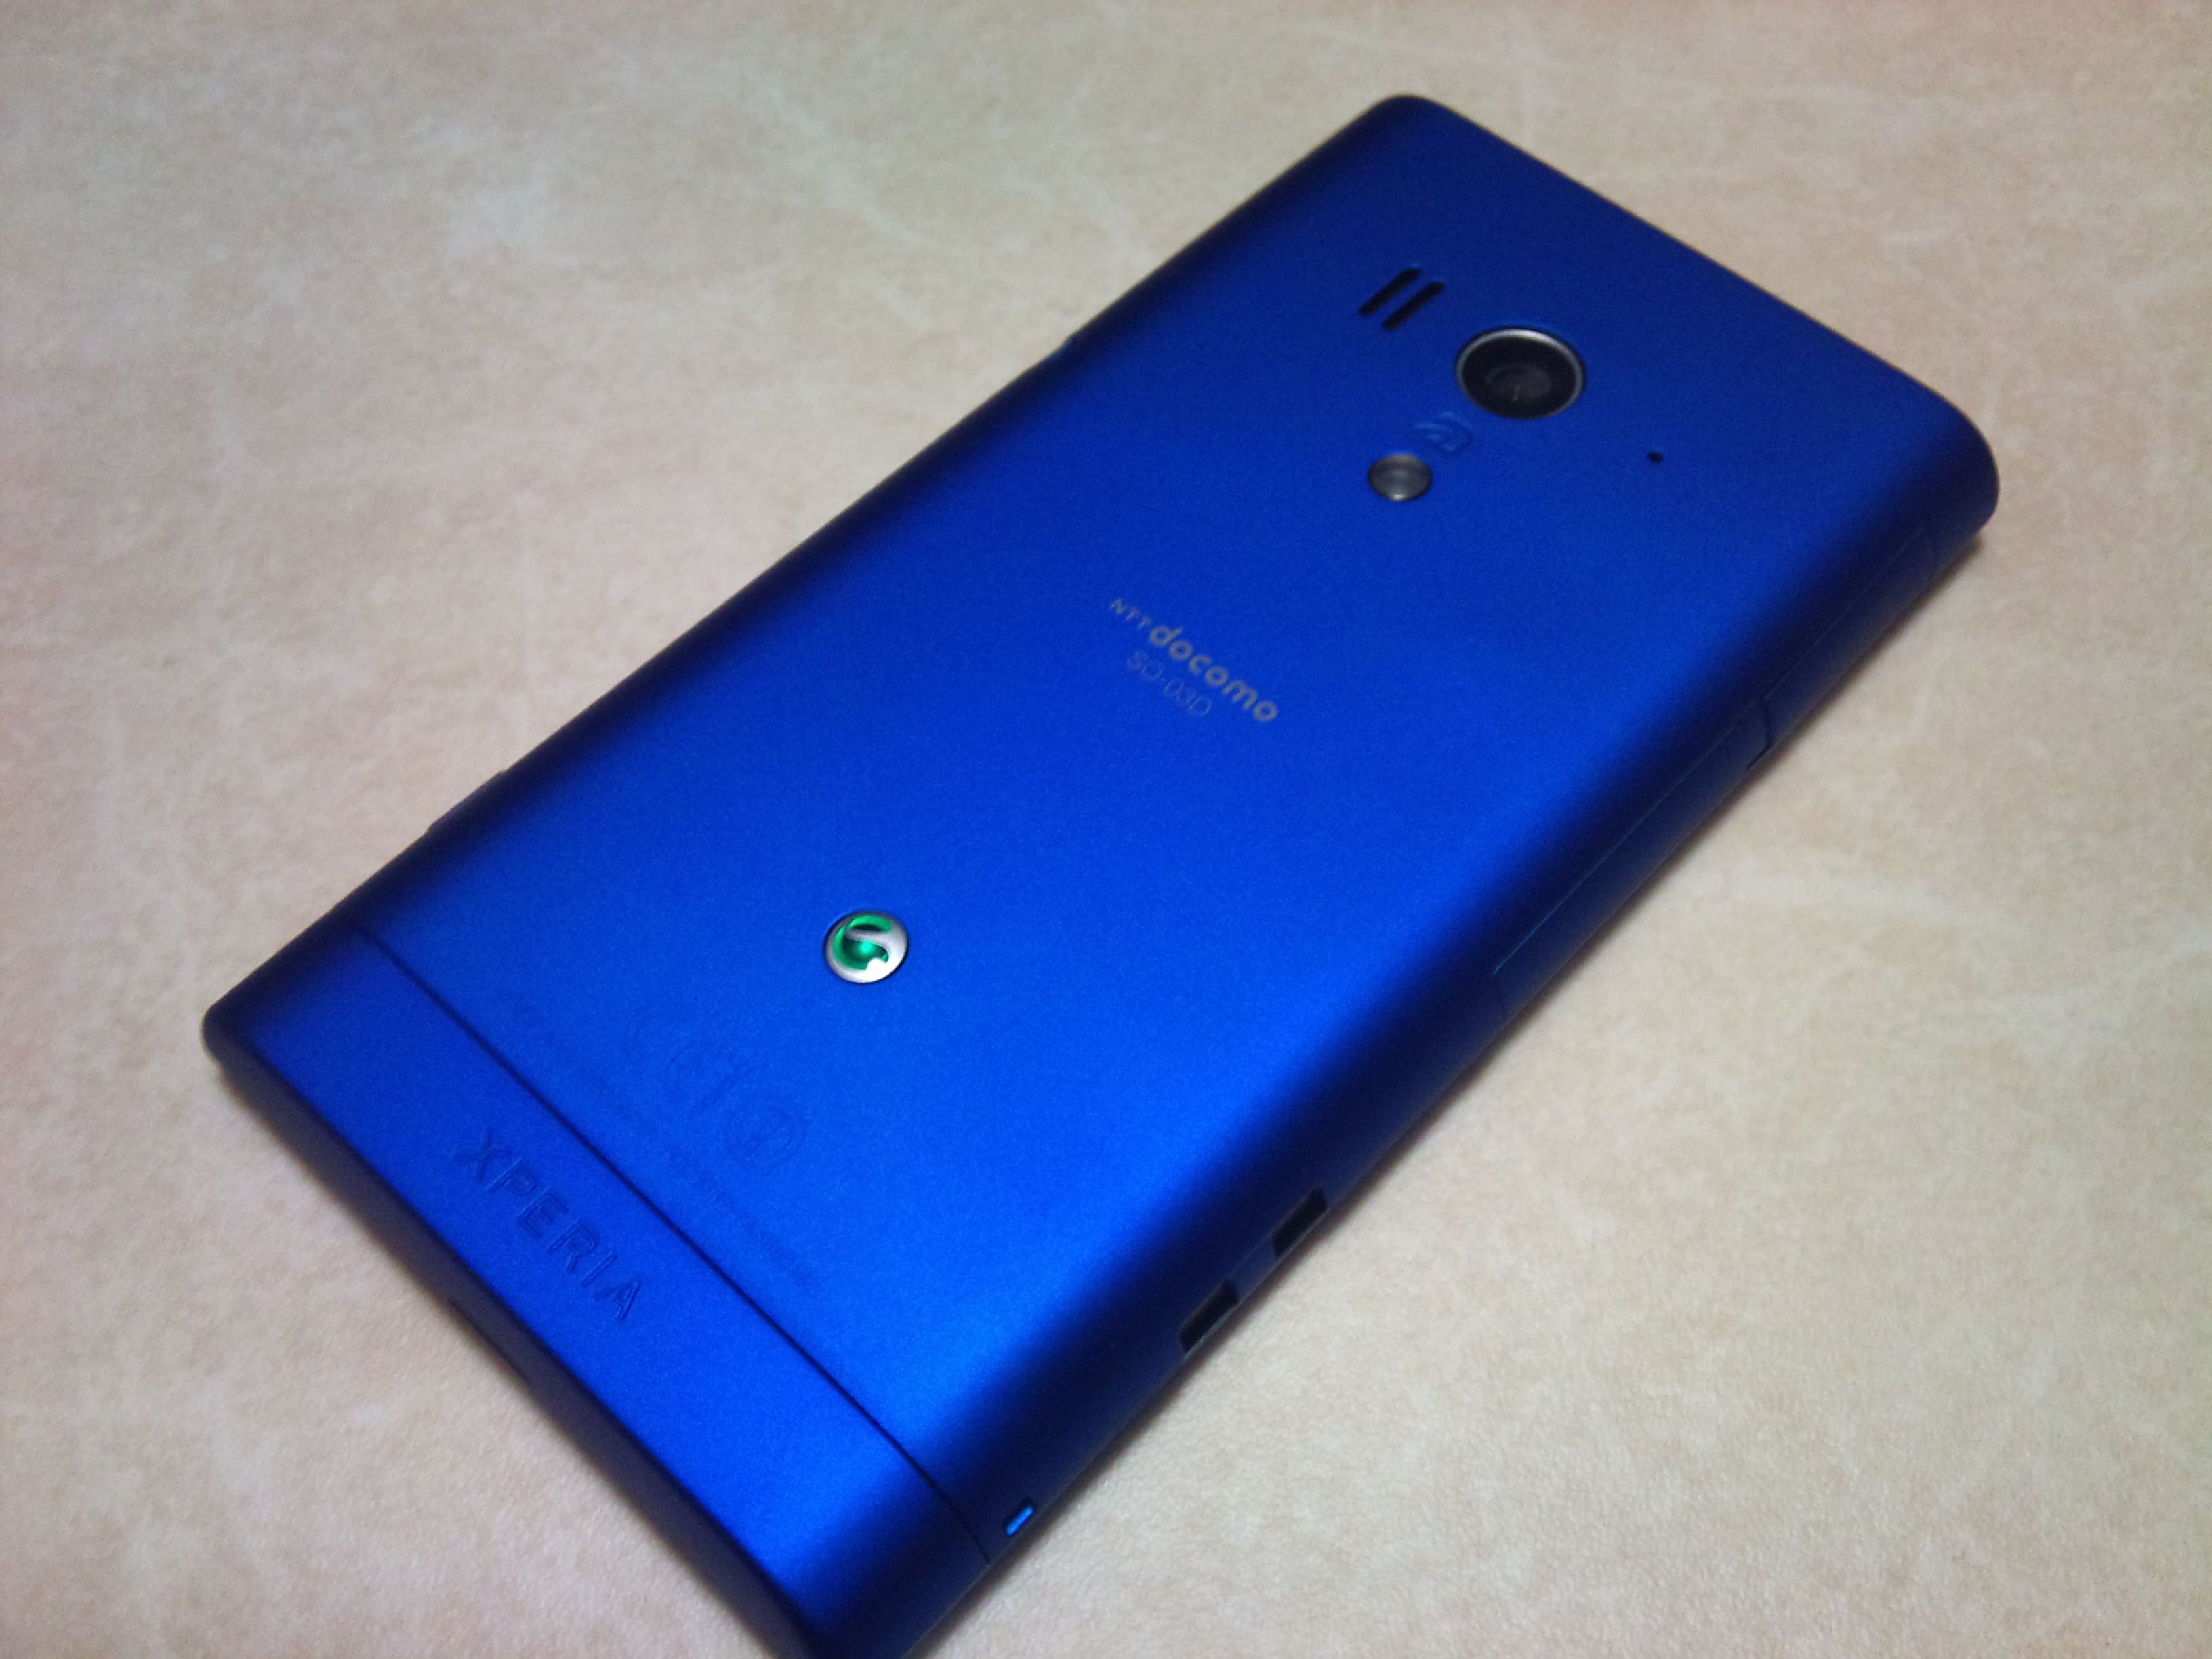 sony xperia acro hd so 03d